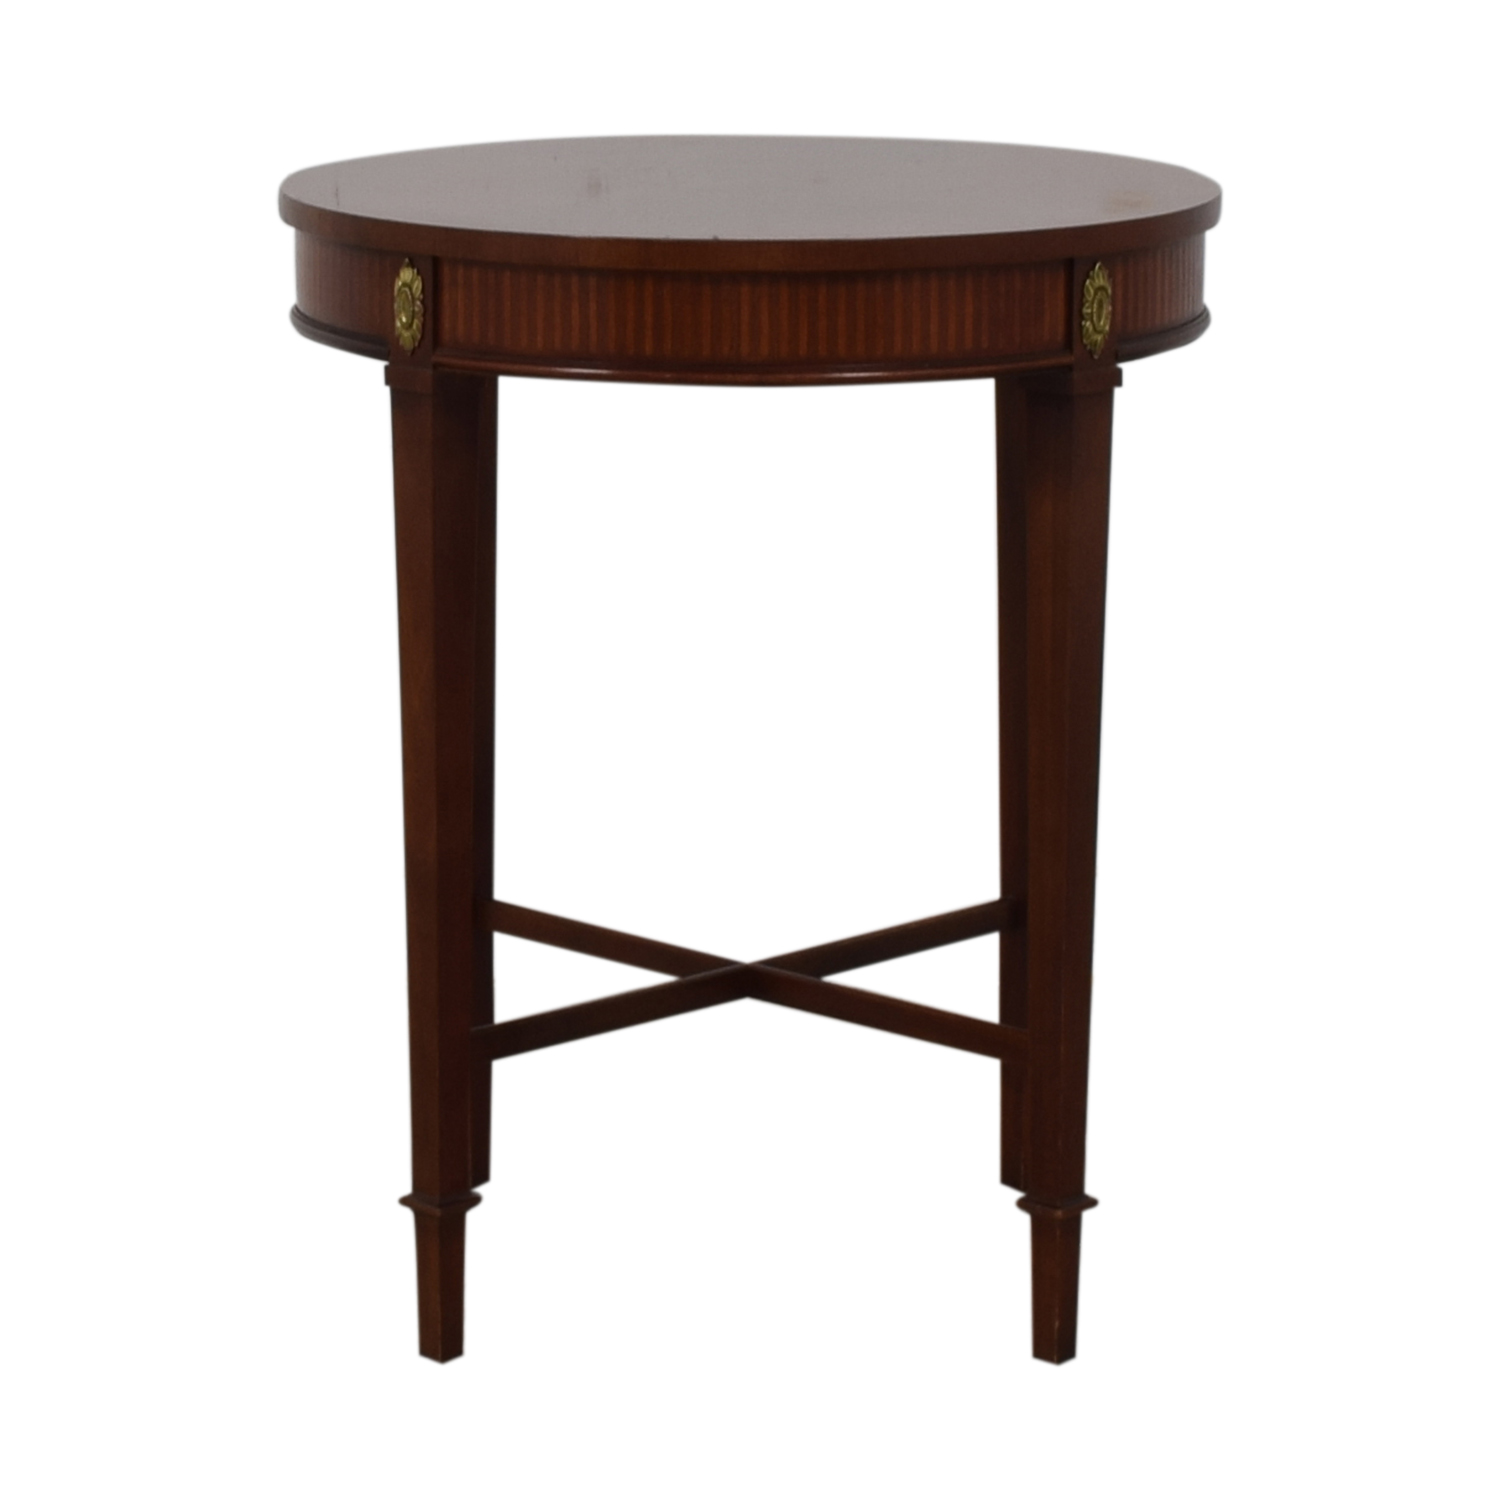 Baker Furniture Baker Furniture Floral Embellished Side Table on sale